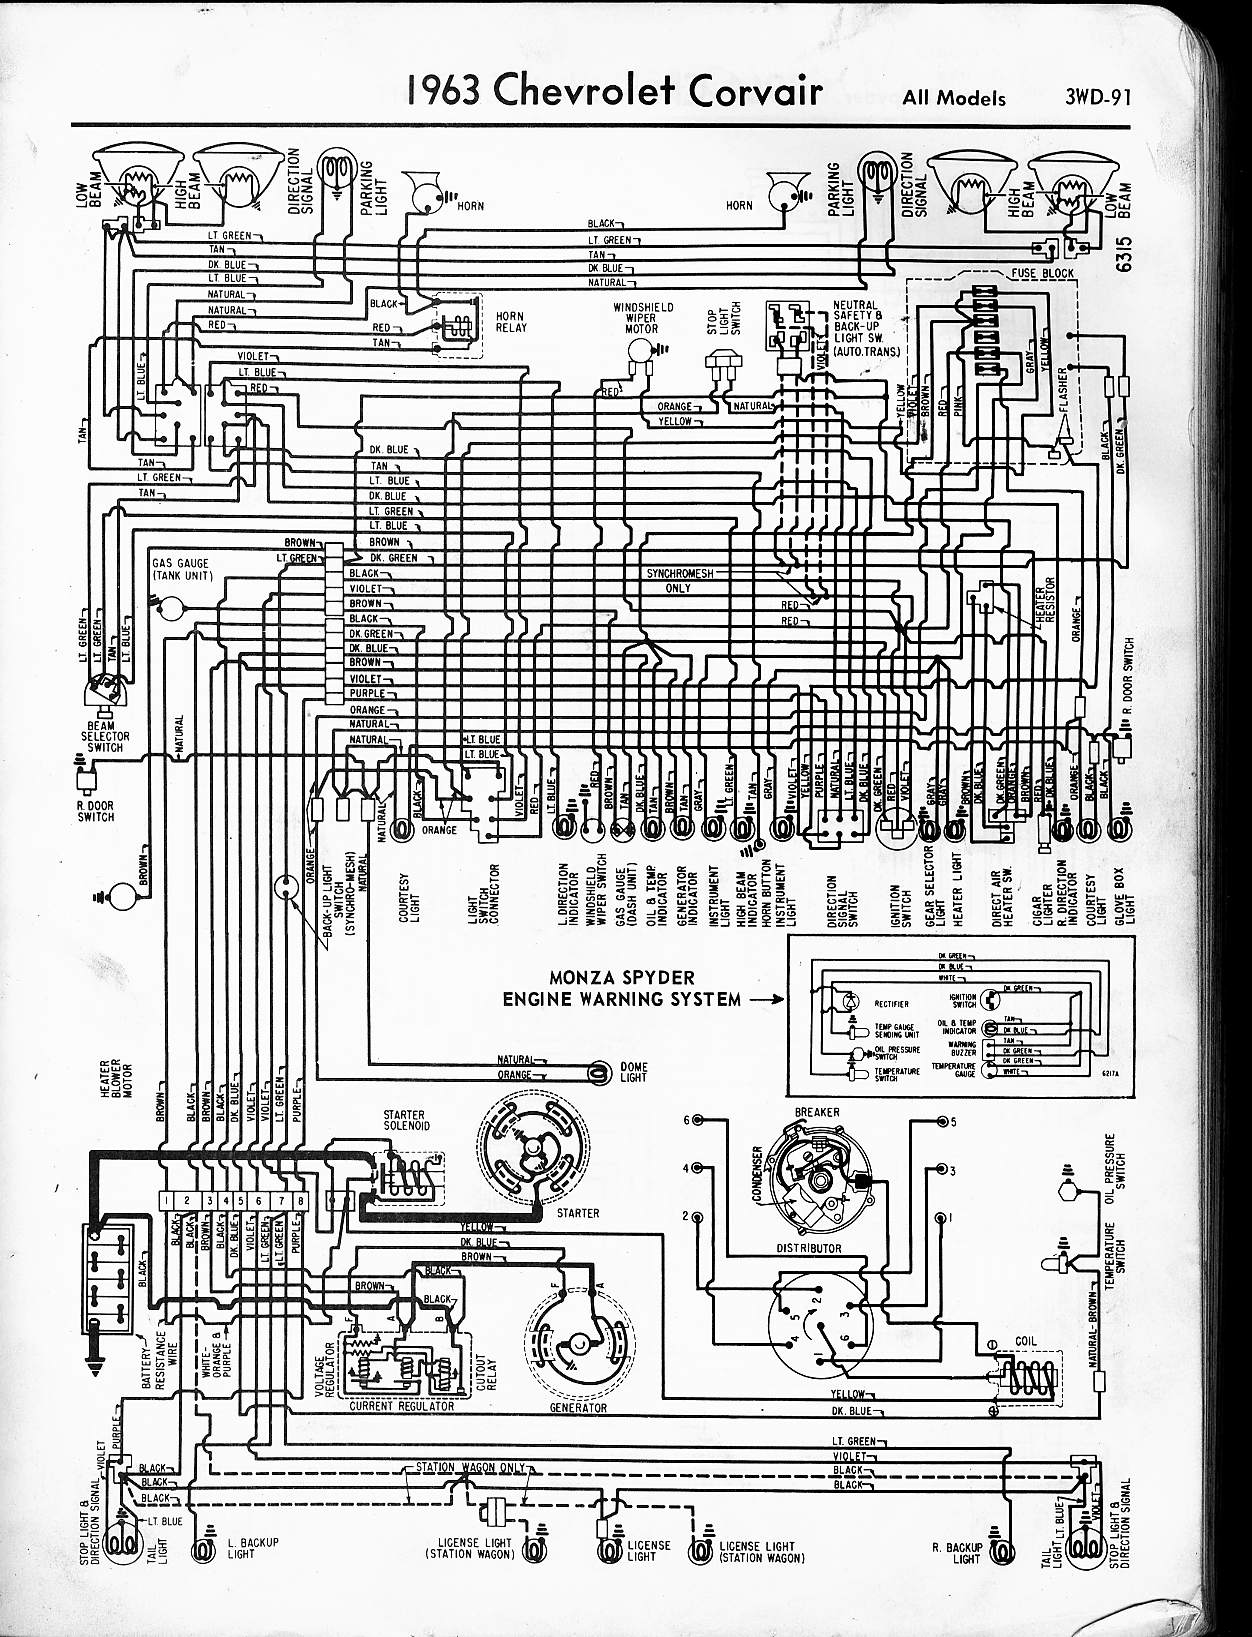 hight resolution of 1964 impala wiring diagram for ignition data wiring diagram schema 02 impala stereo wiring diagram 64 impala starter wiring diagram